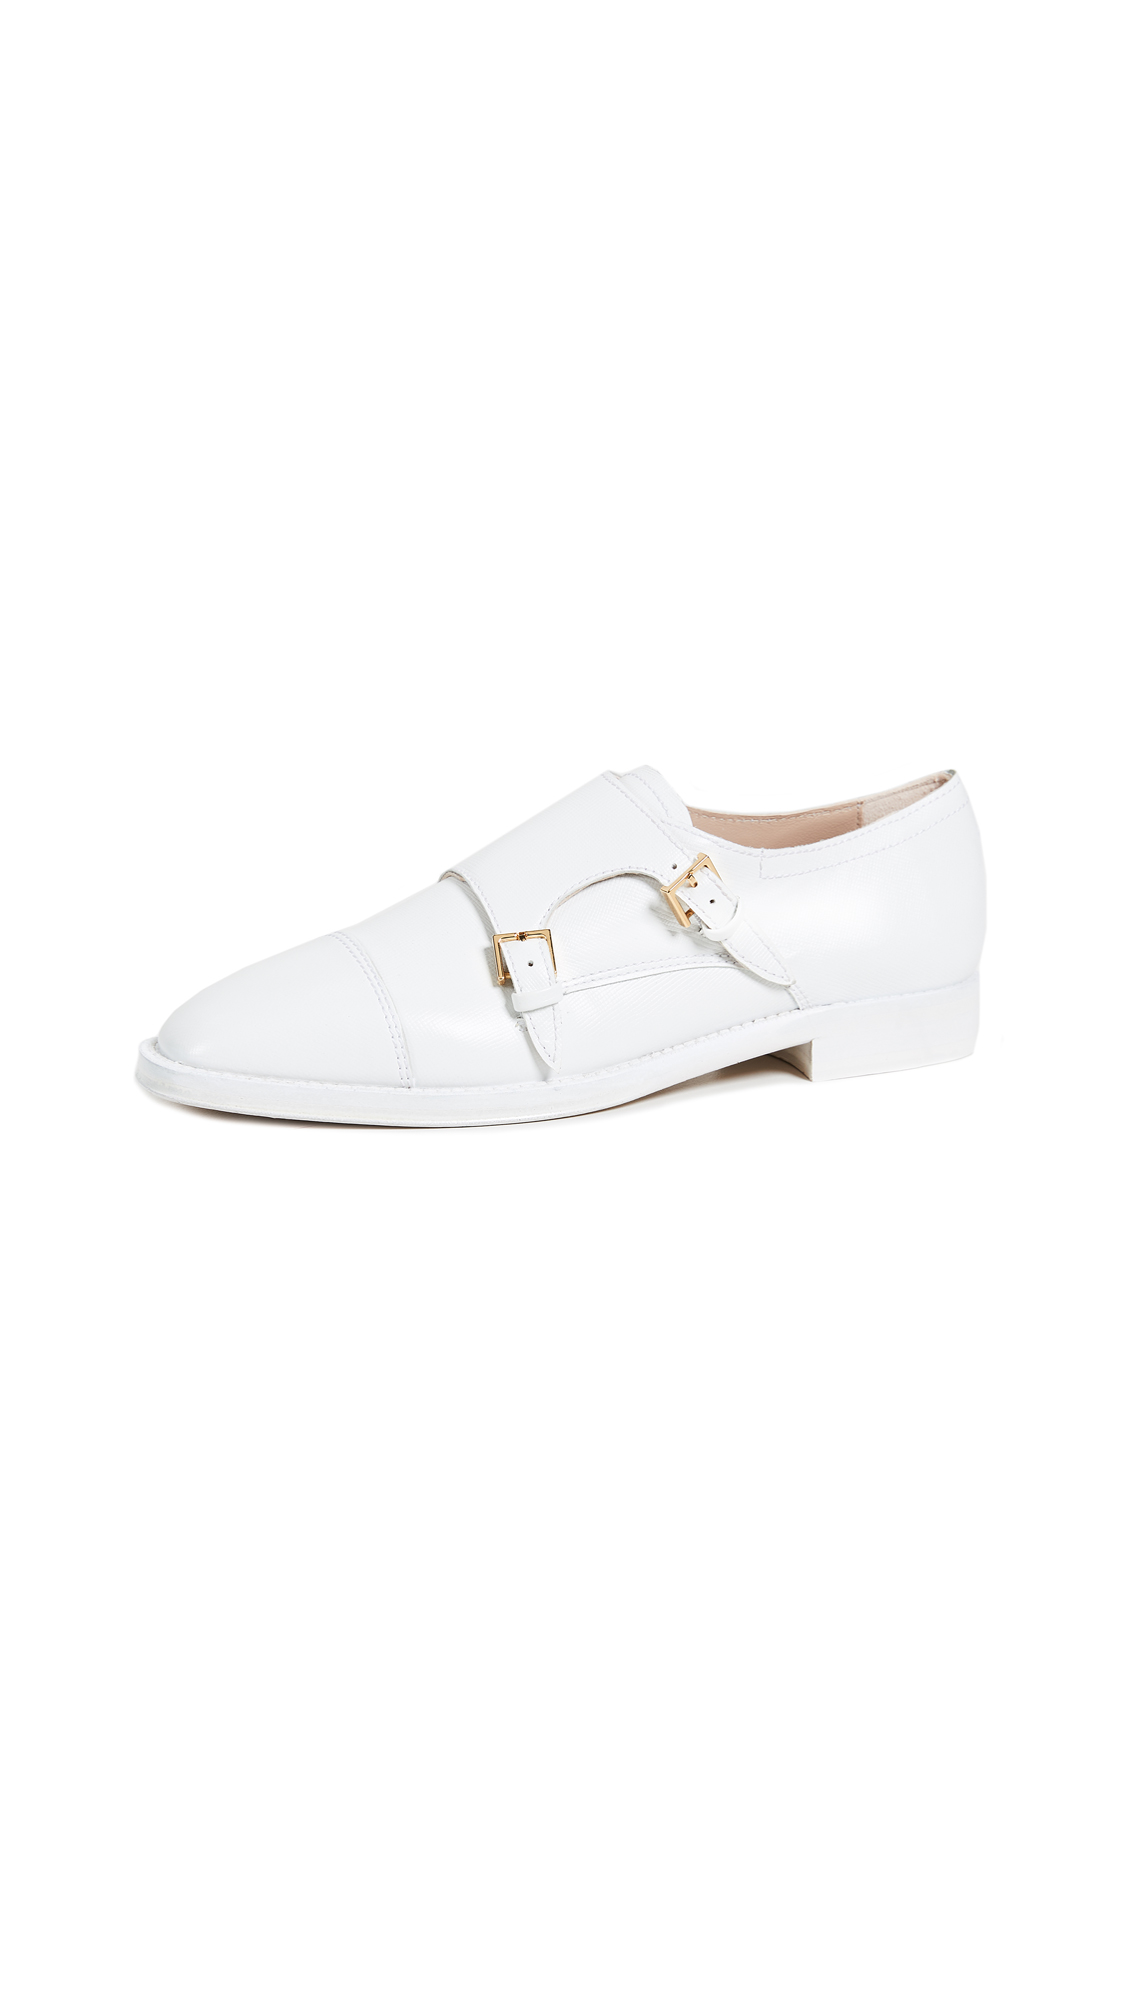 Stuart Weitzman Monk Oxfords - White